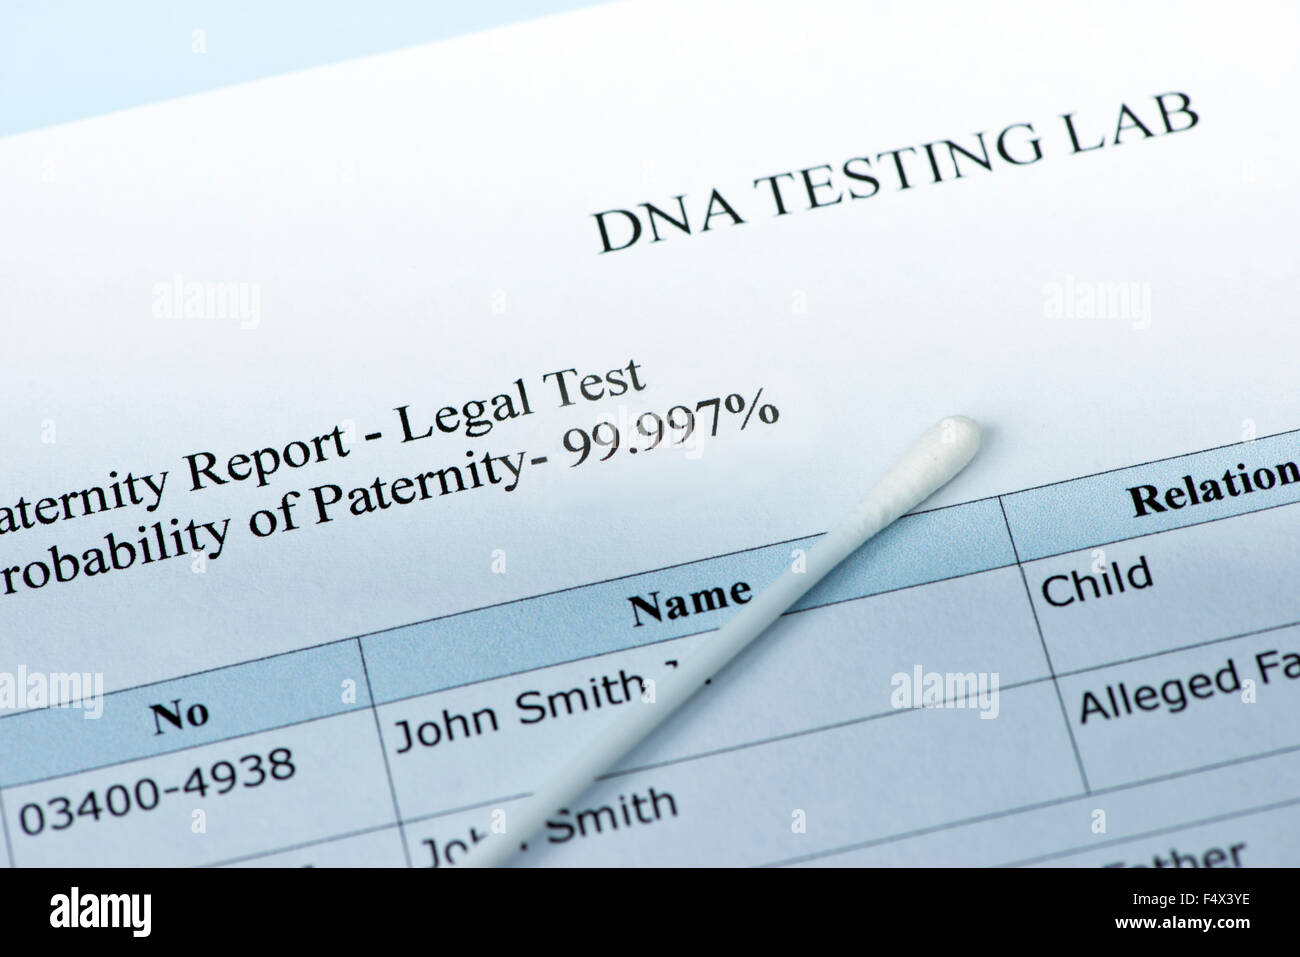 Paternity test results with lab sample swab. - Stock Image